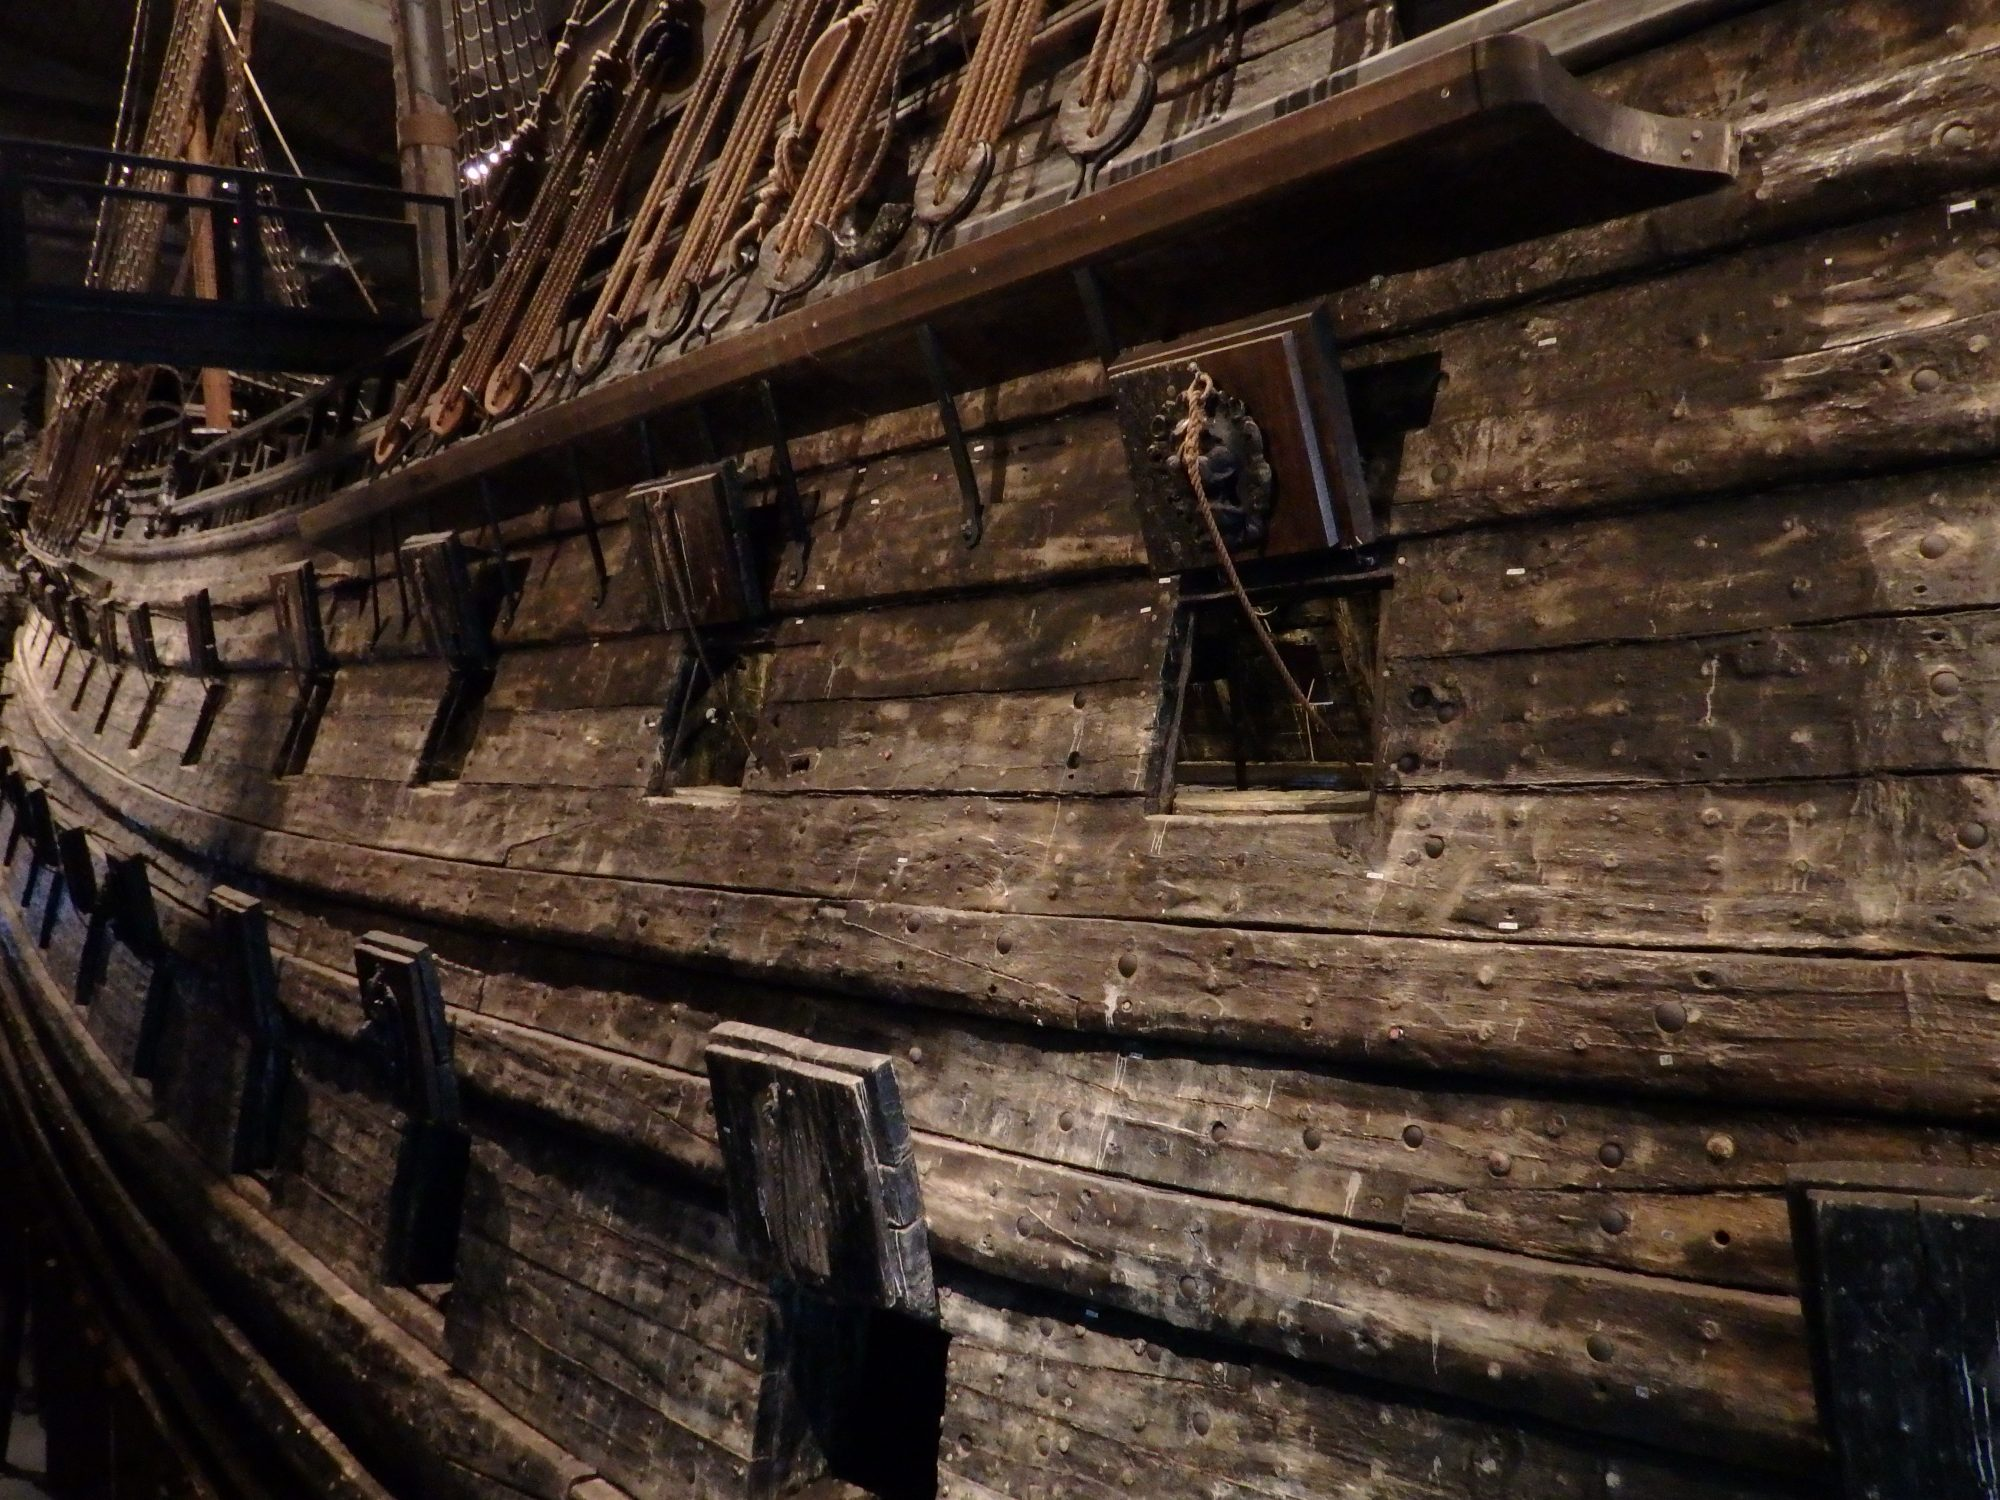 a view down the side of the Vasa showing both rows of gunports: Stockholm, Sweden